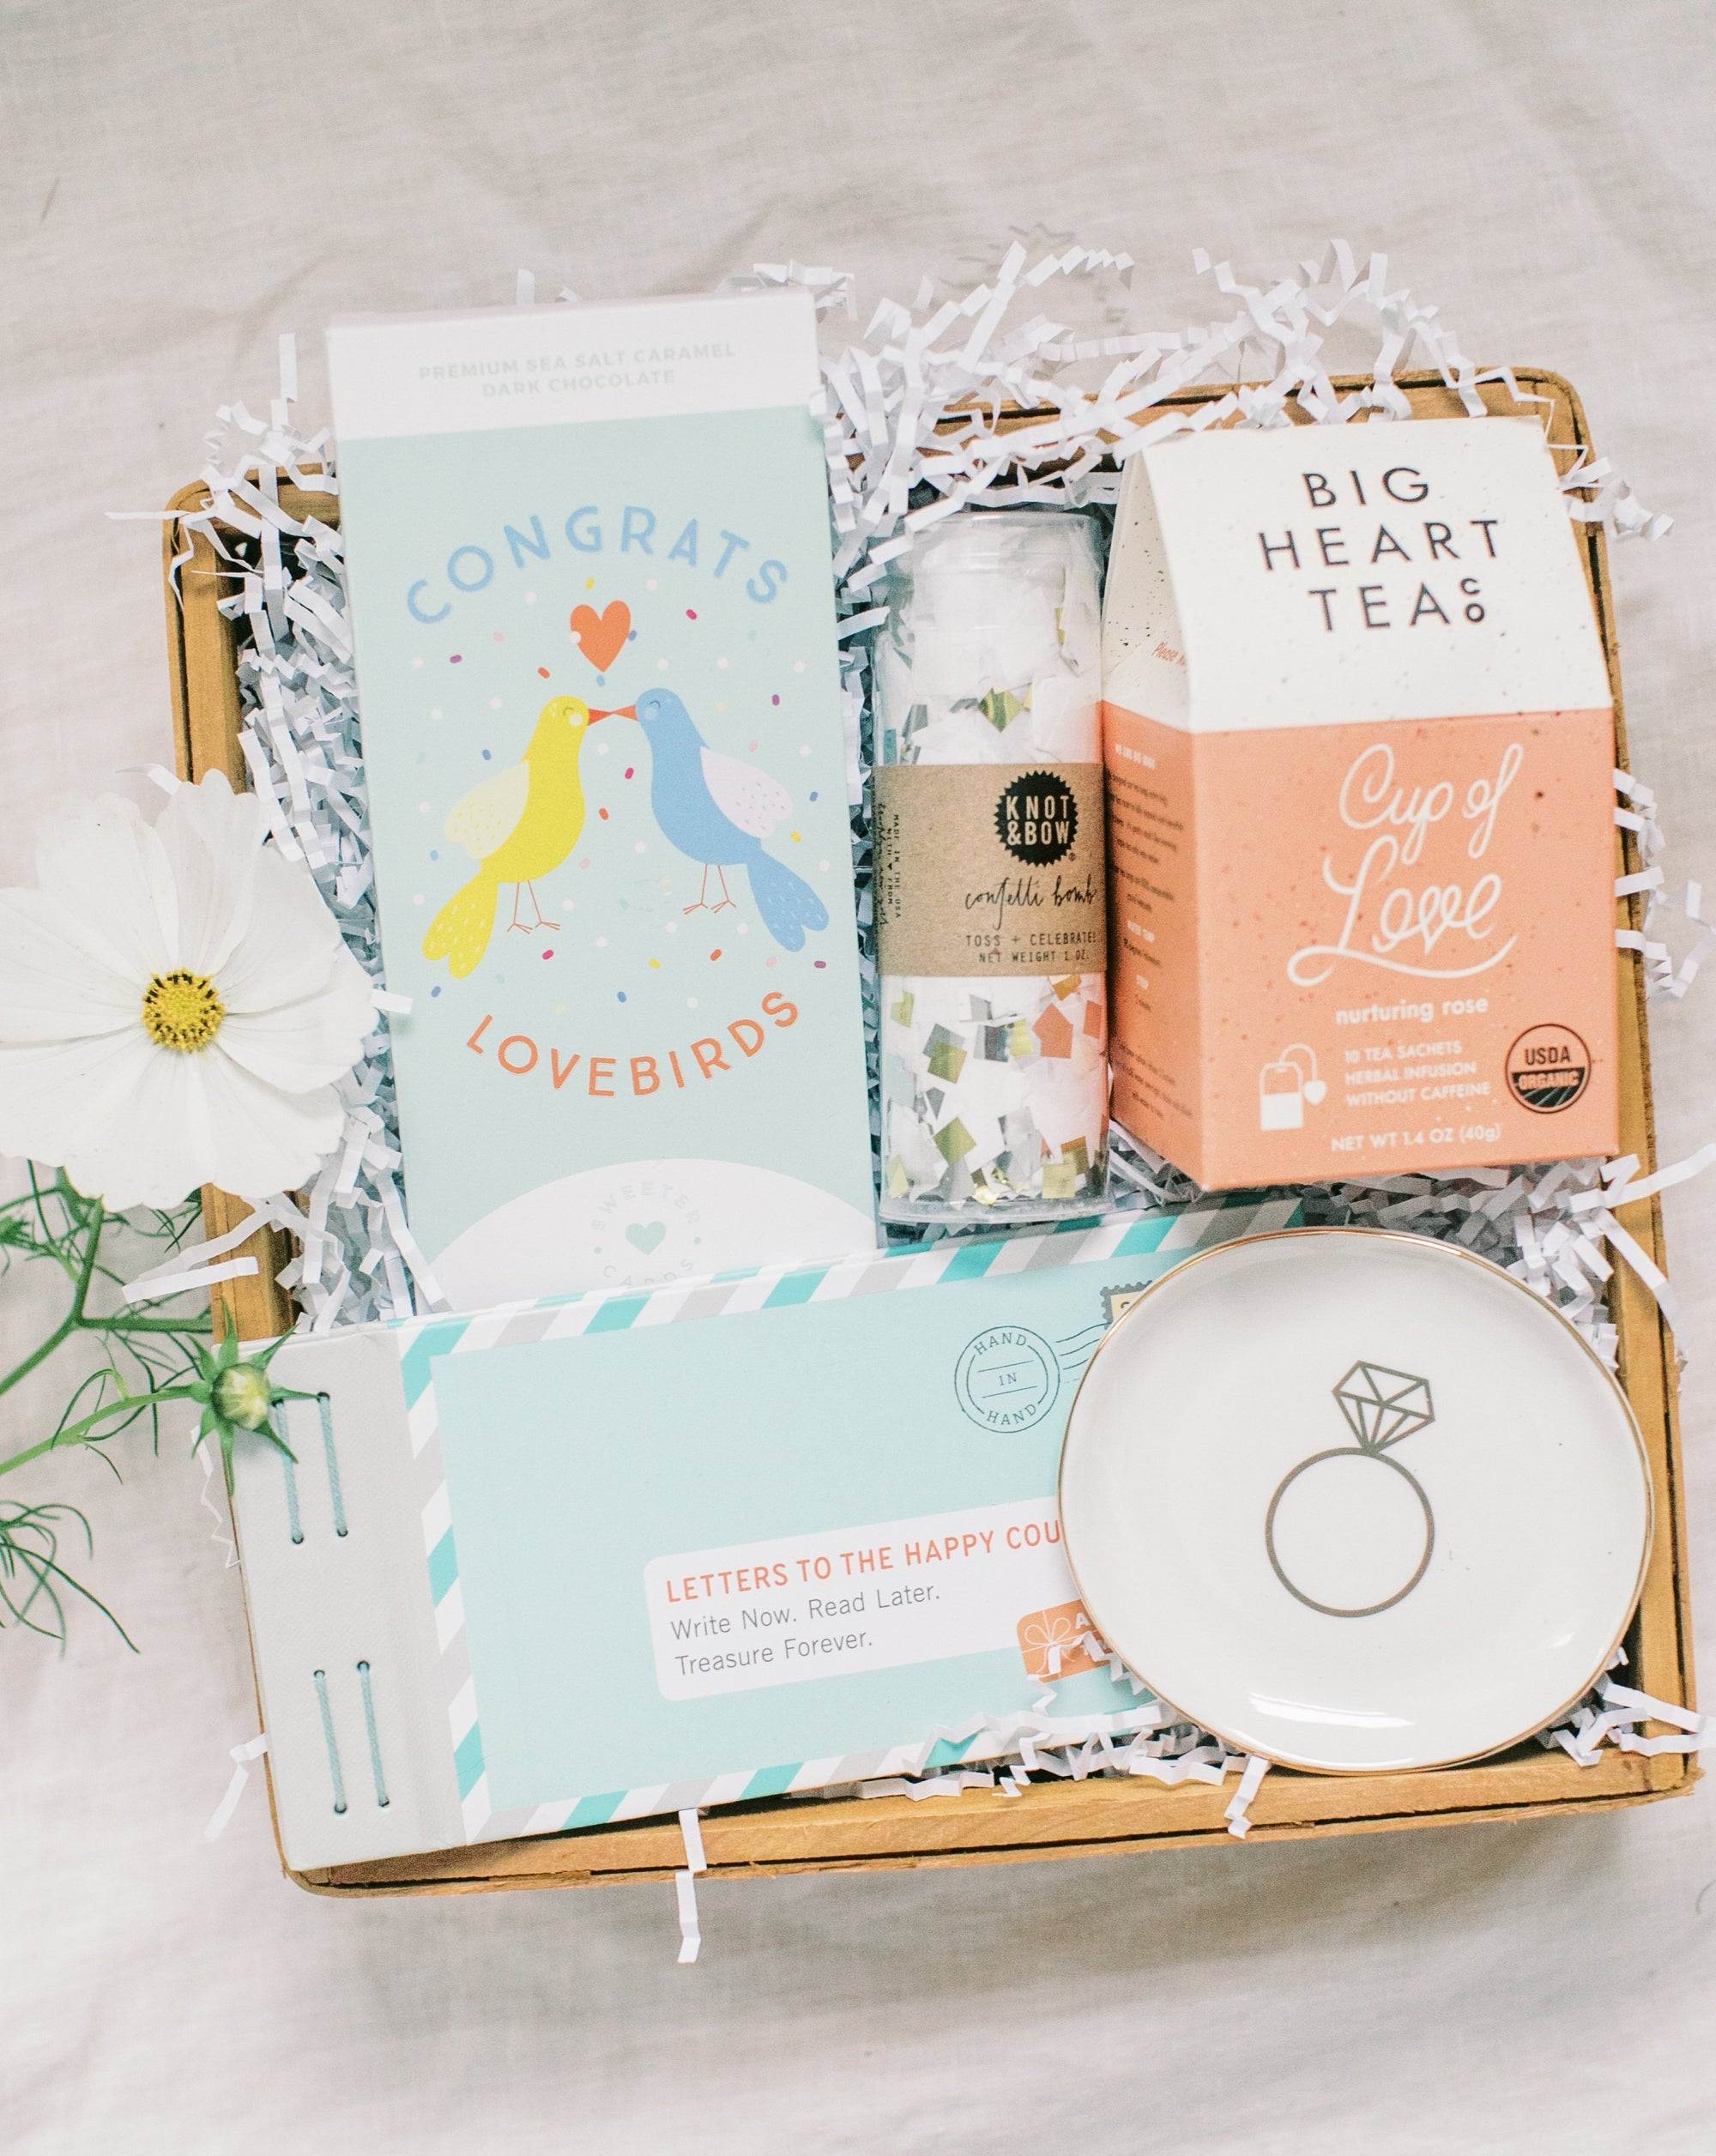 the wedding/engagement box